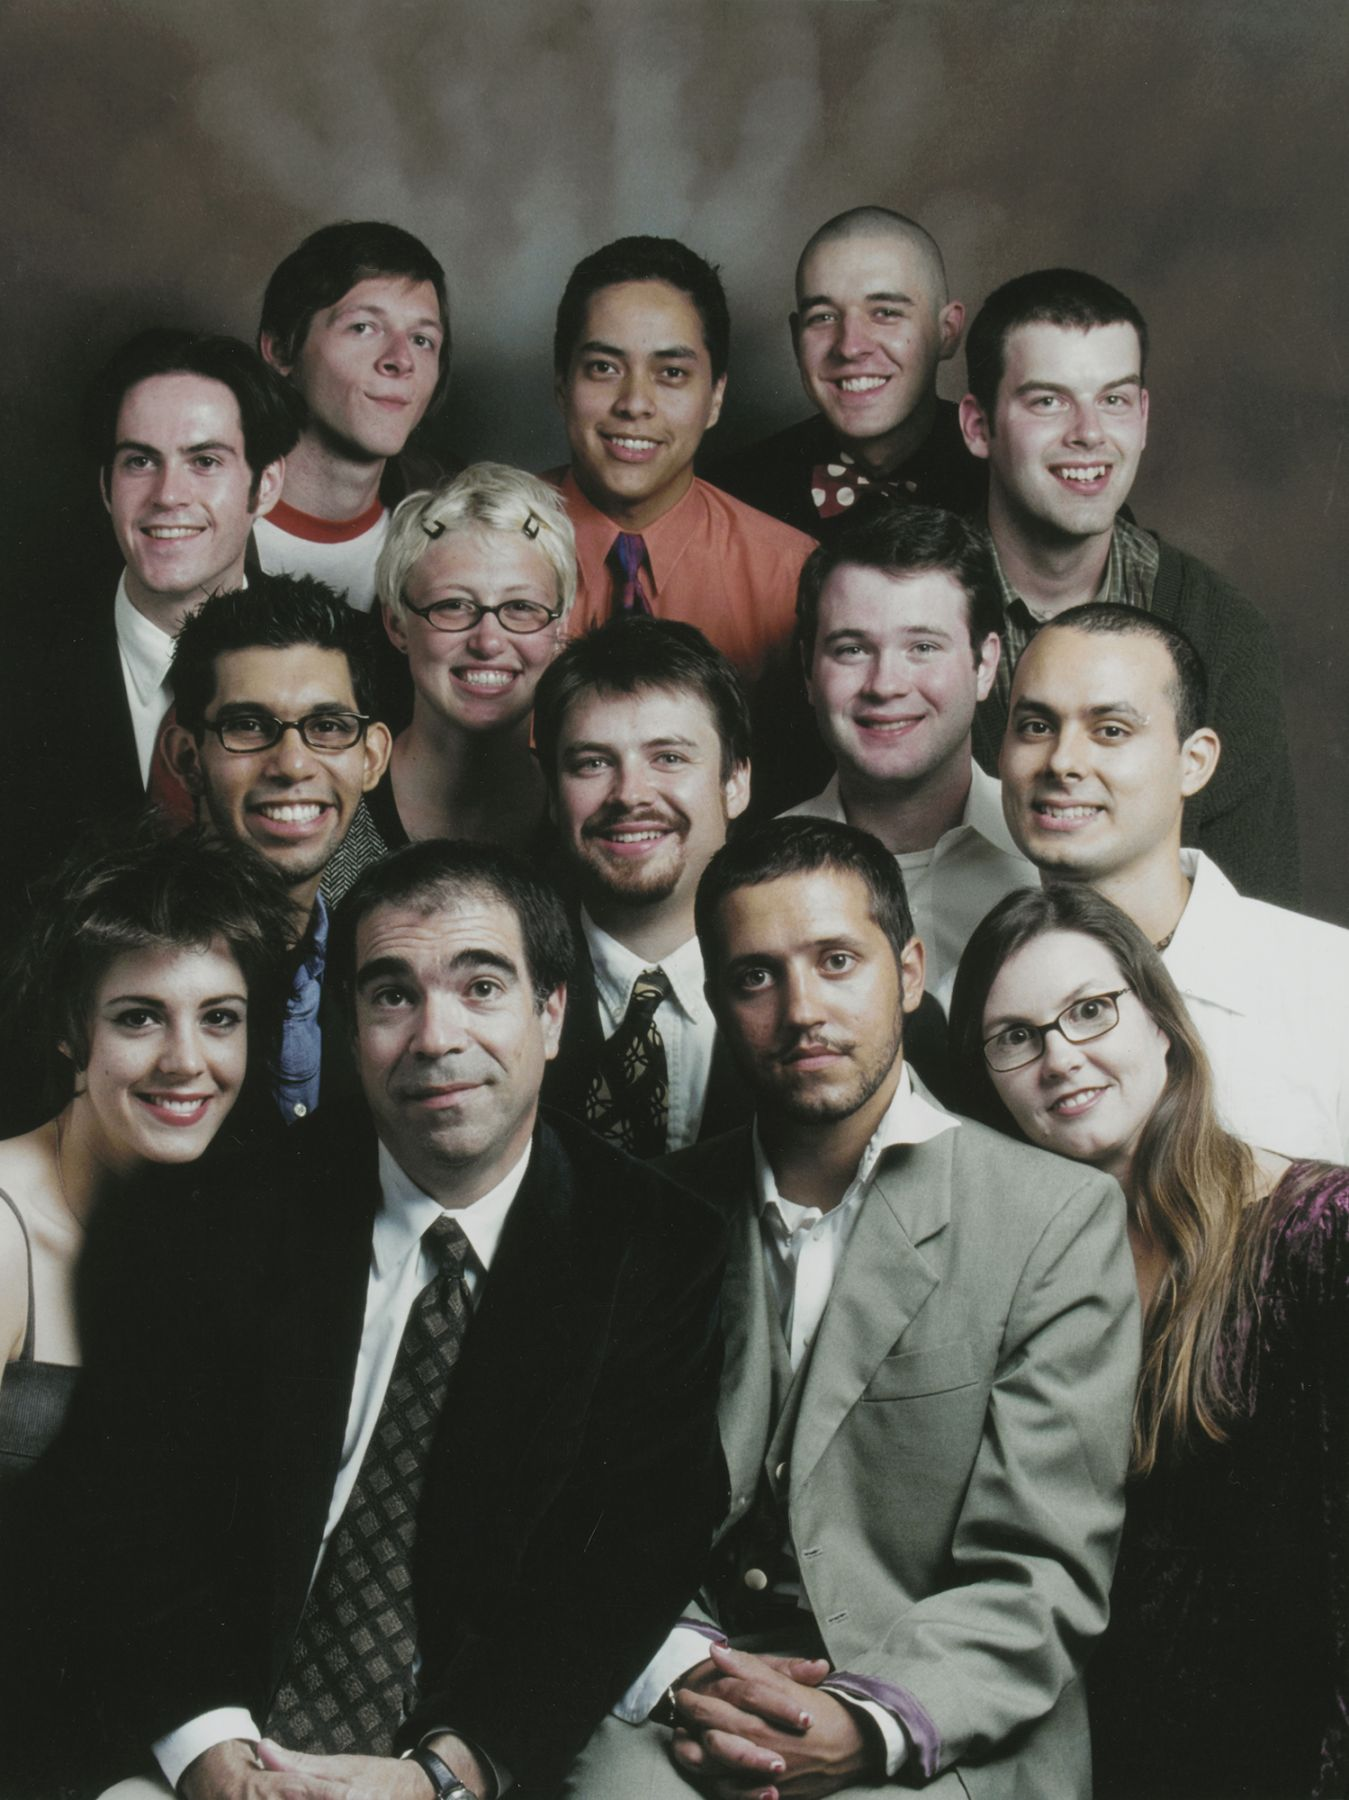 Michael Smith   Sears Class Portrait, Fall 1999, 1999  Photograph  10 x 13 inches (25.4 x 33 cm)